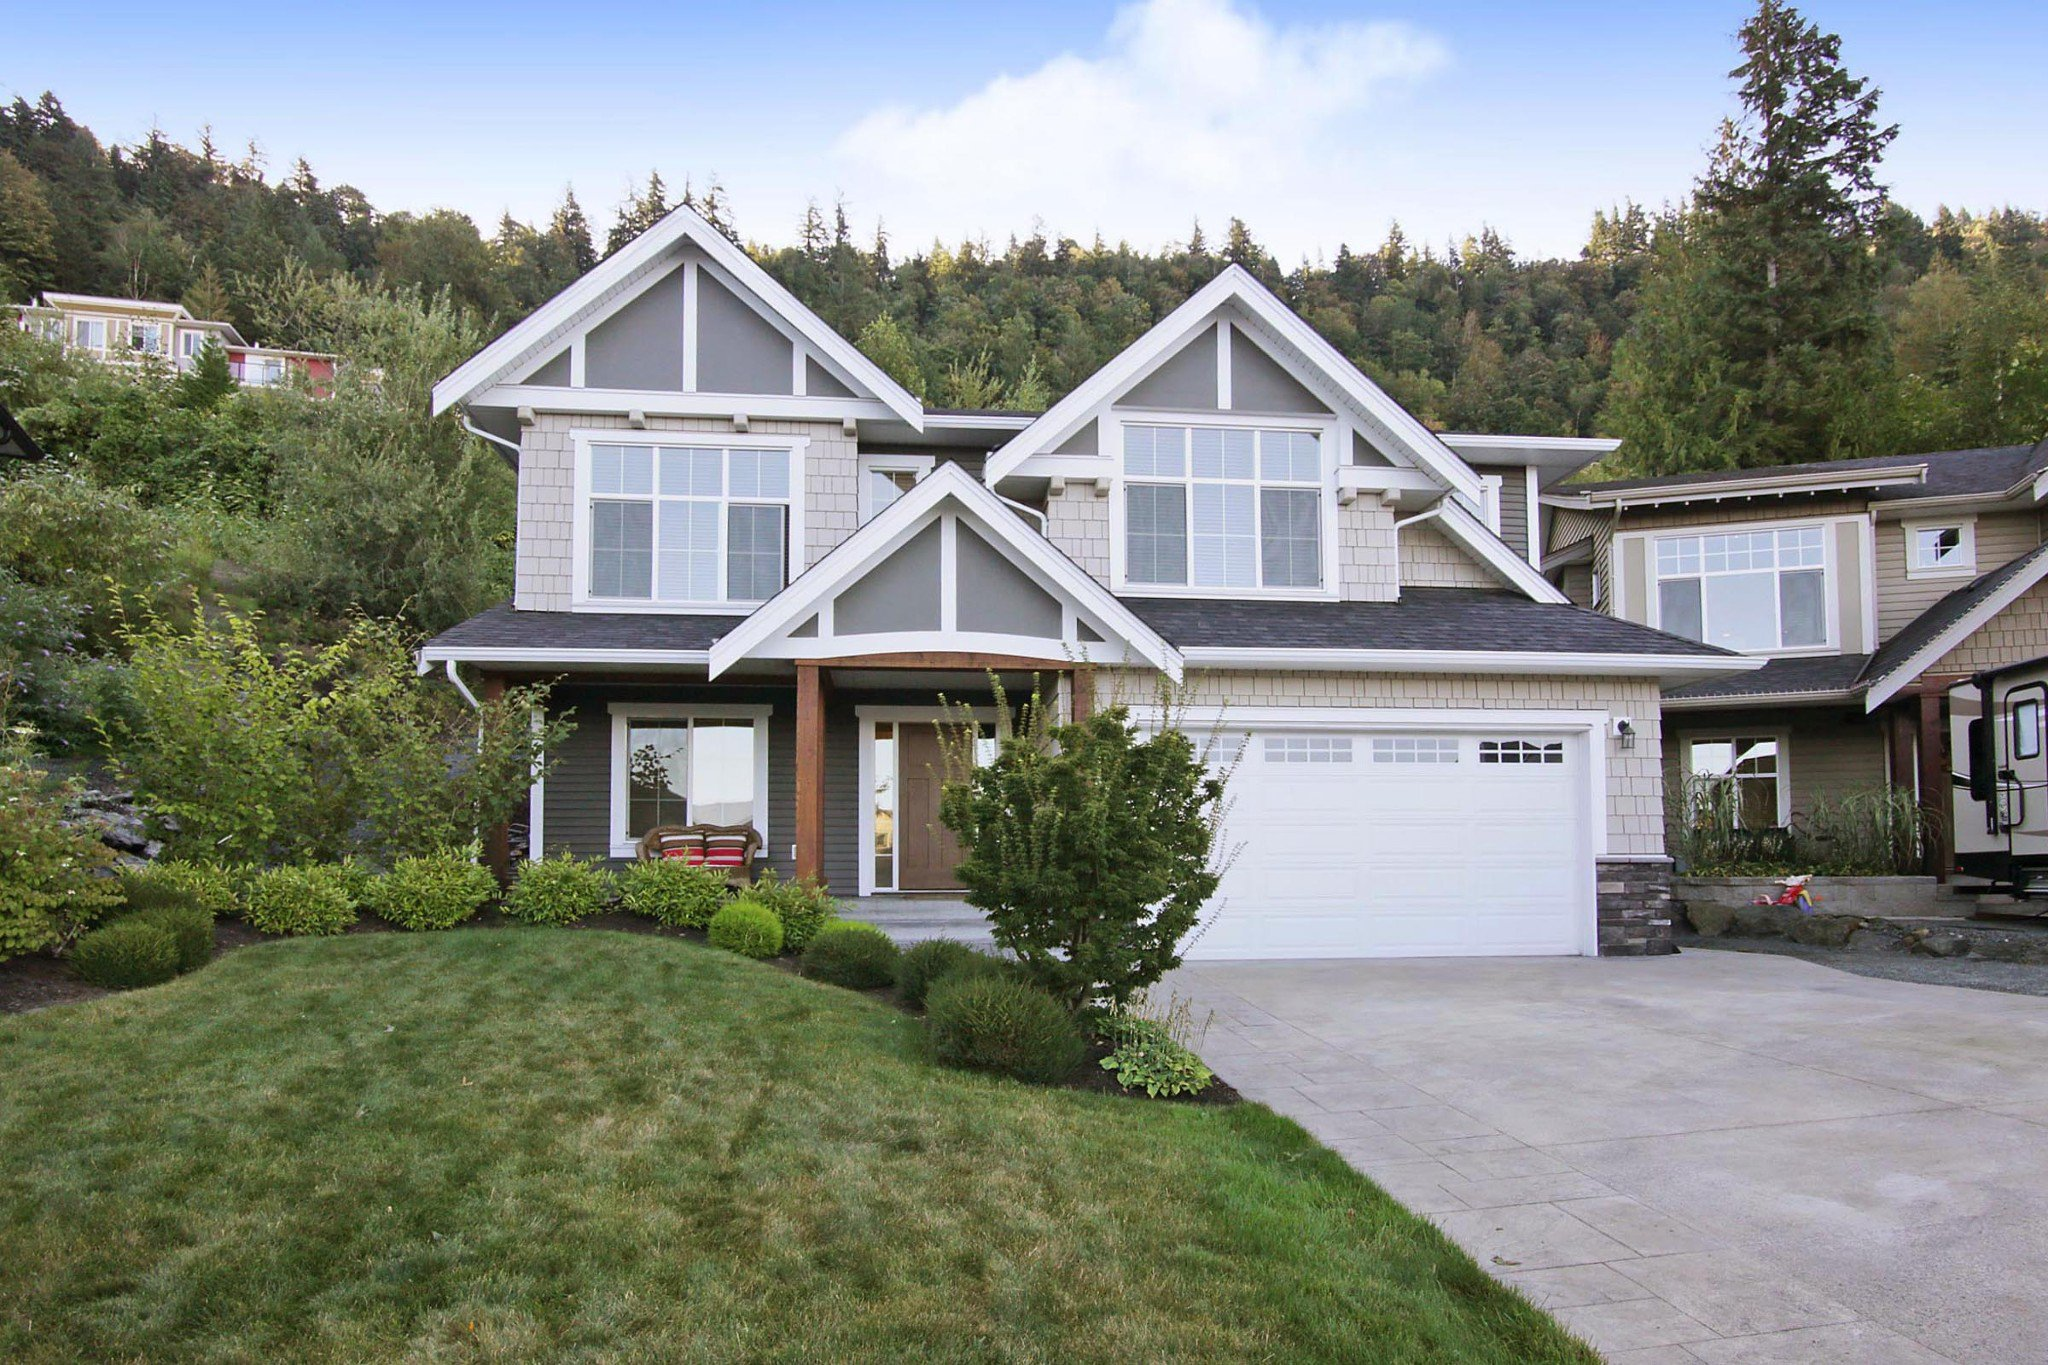 Main Photo: 6088 FOLEY Place in Chilliwack: Promontory House for sale (Sardis)  : MLS®# R2495860